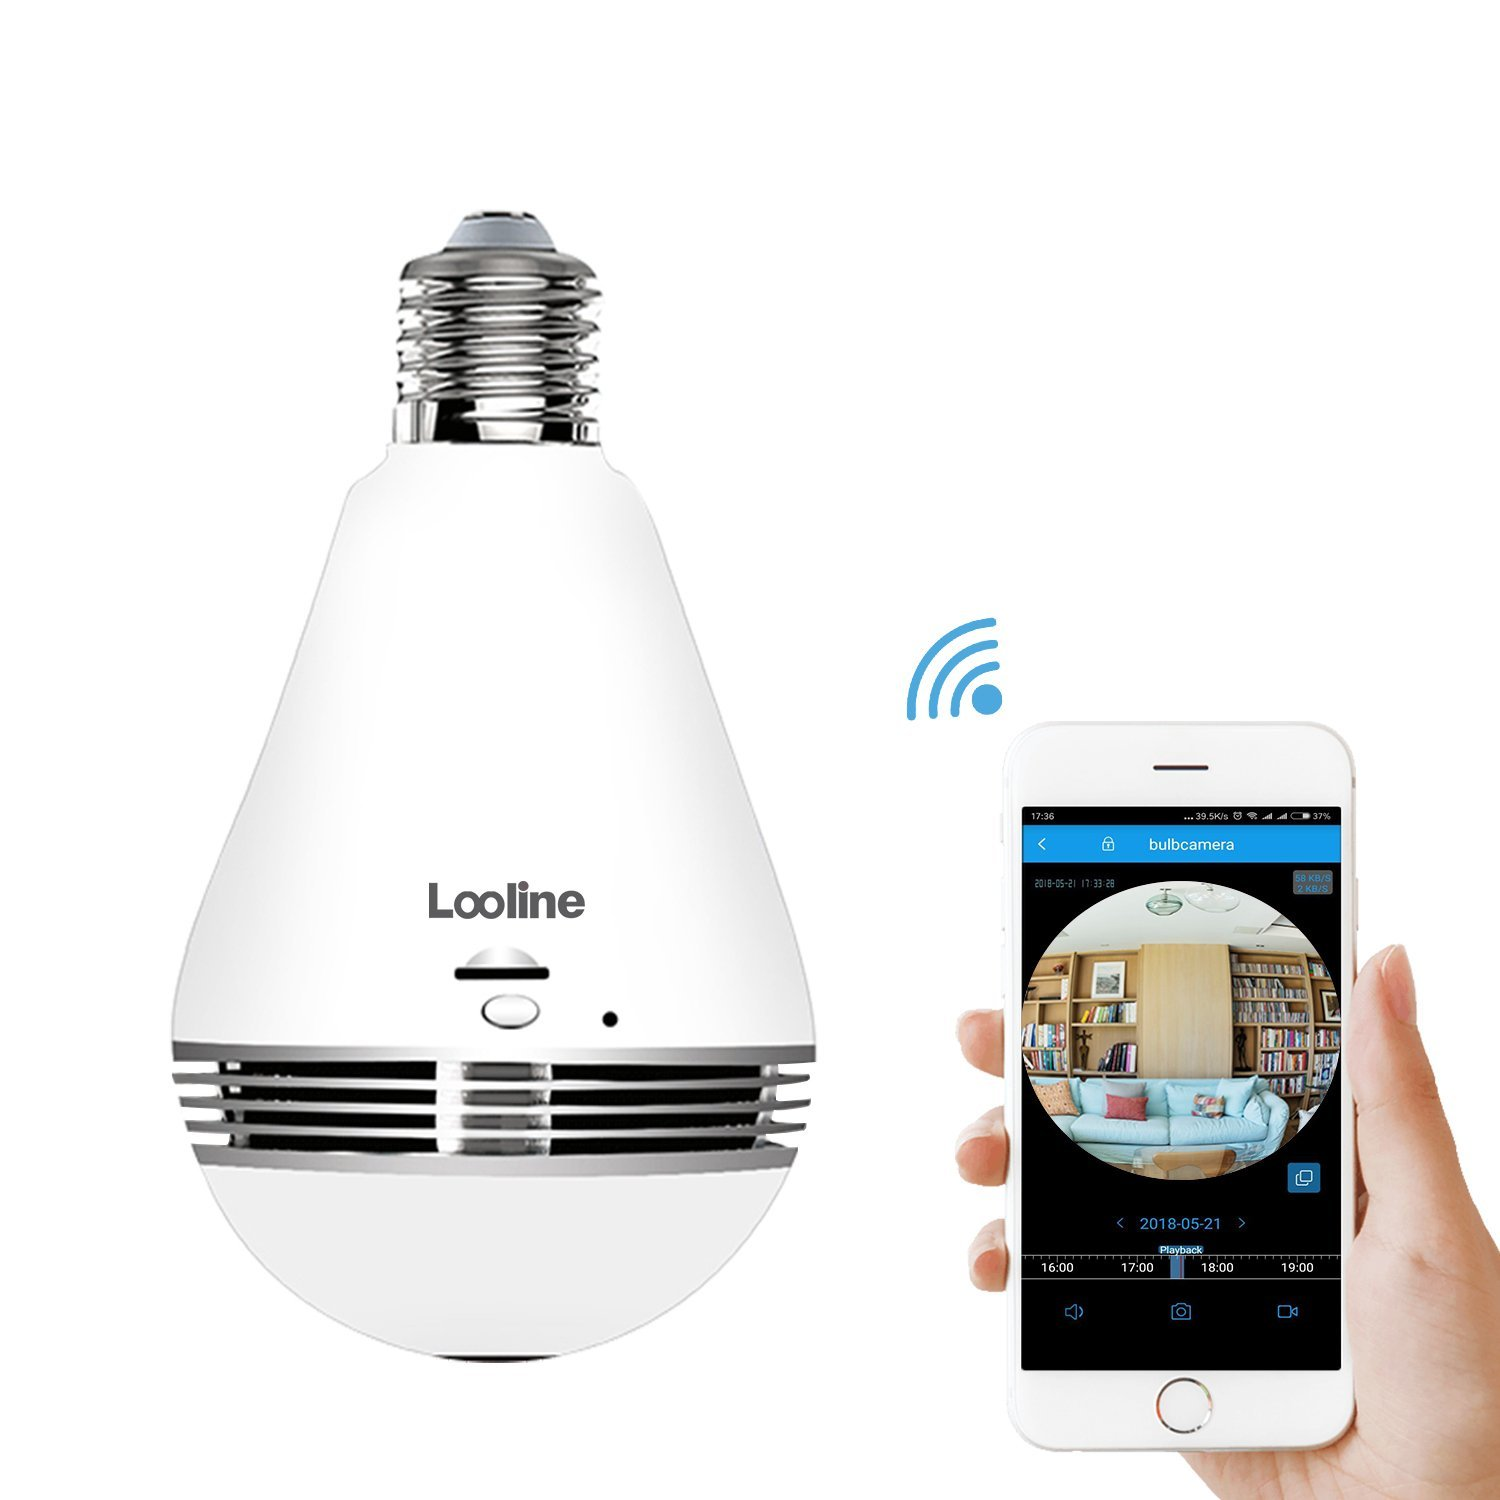 Light Bulb Camera VR Panoramic IP Wireless WiFi Camera Include 16GB TFCard with Cloud Store 360 Degree Fisheye Lens Lighting Lamp for Home Security Camera Bulb 960P HD E27 LED Dimmable Lamp